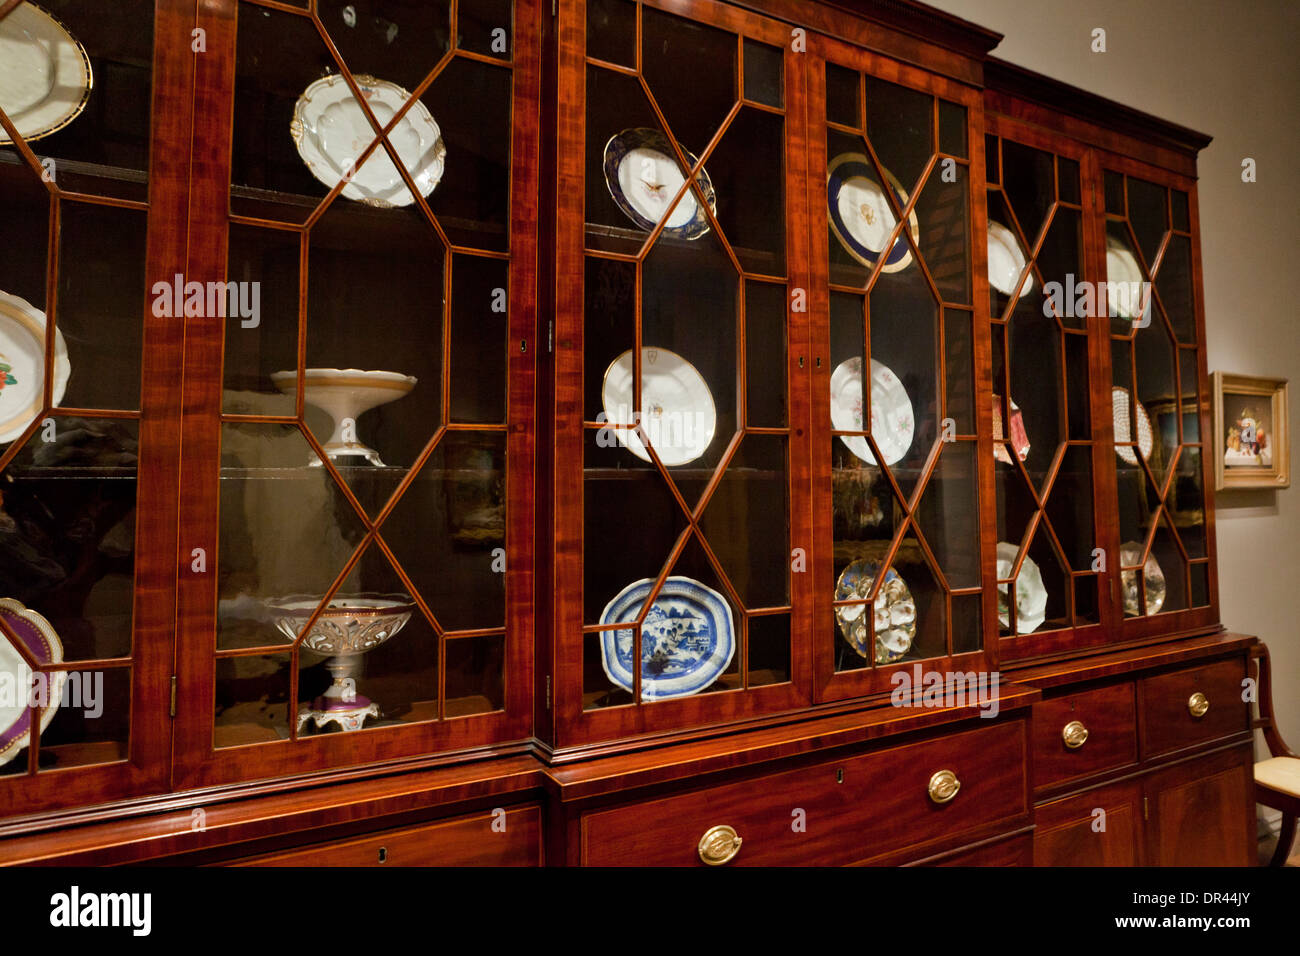 Antique cherry wood china cabinet - Antique Cherry Wood China Cabinet Stock Photo: 65859667 - Alamy